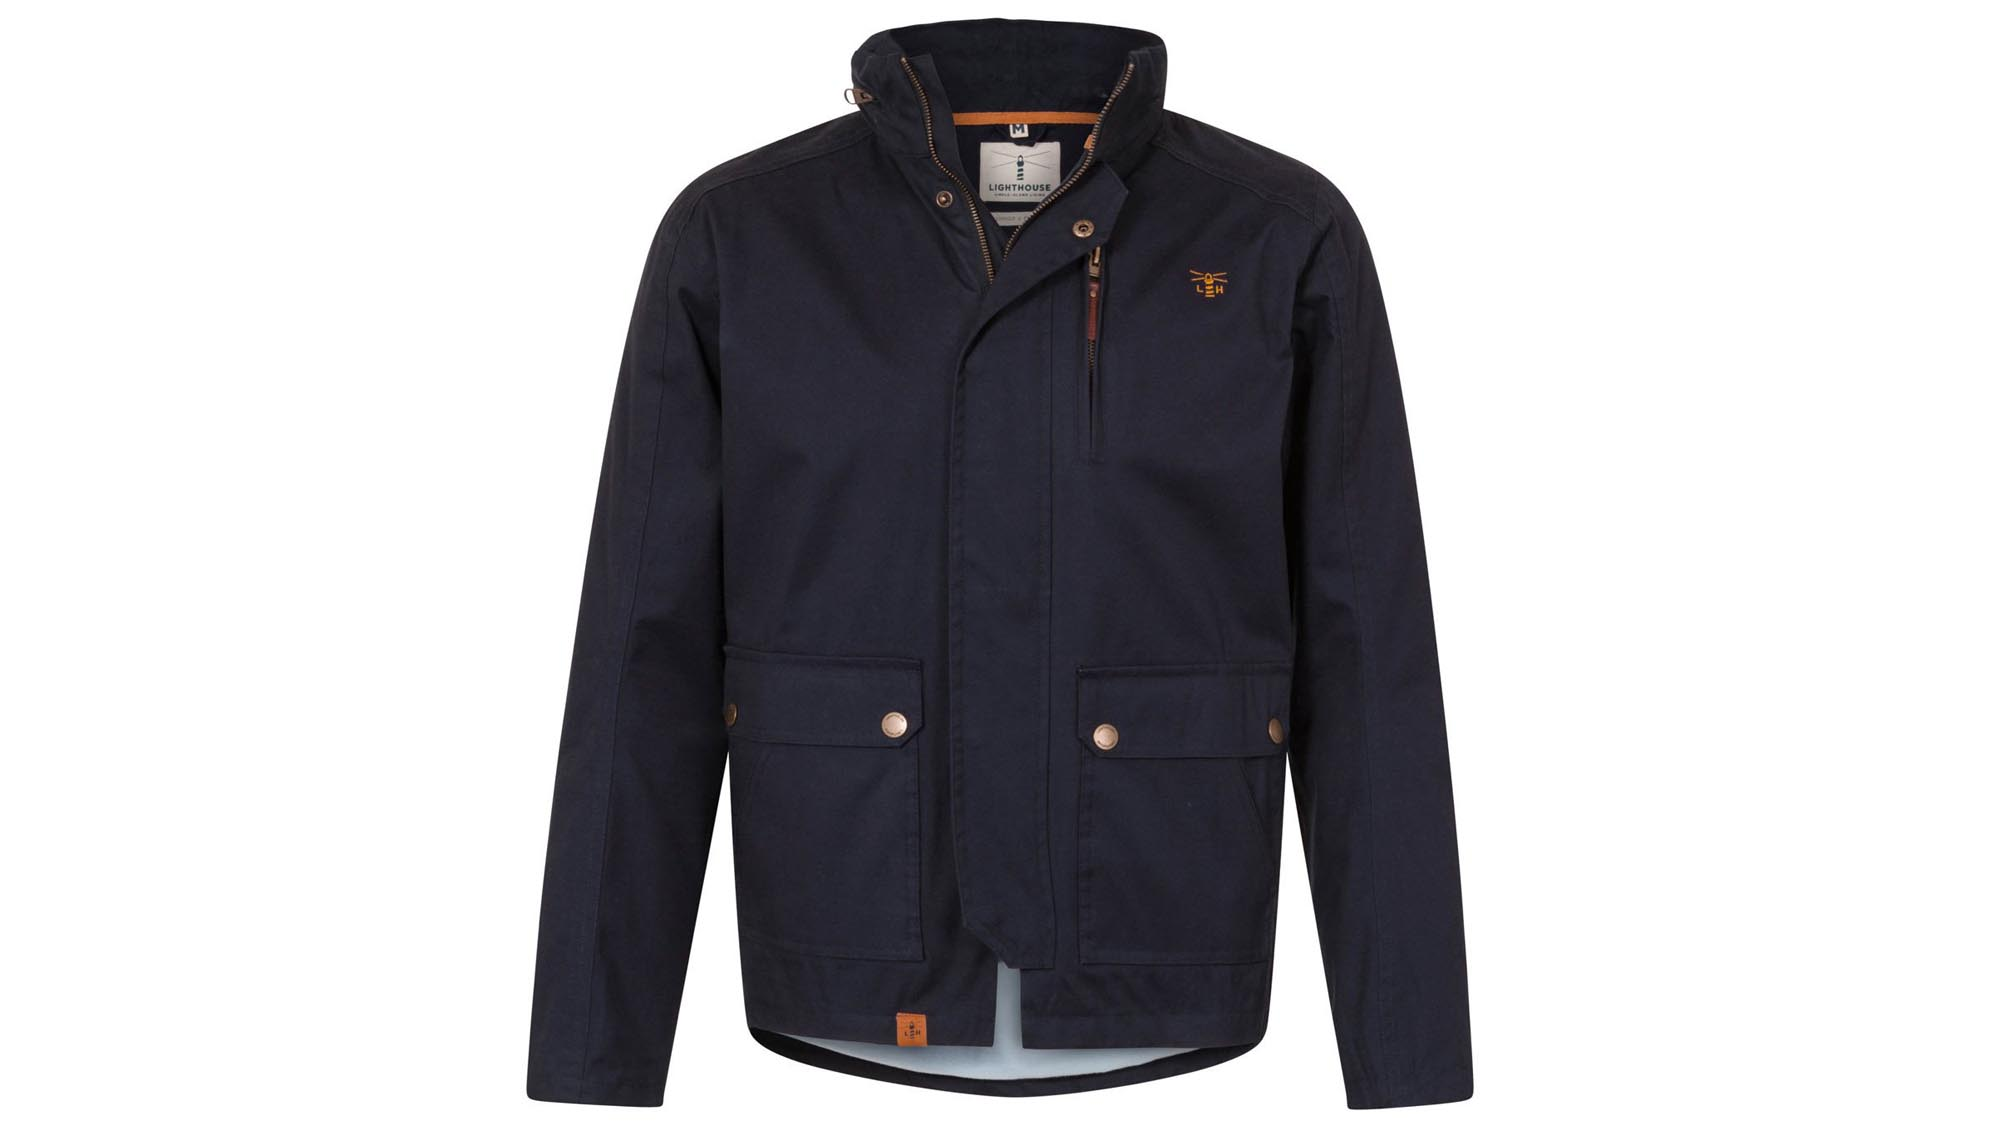 abb238a29aeb The Islander squeezes in at less than £100, but manages to look as smart as  country jackets twice the price. It combines great waterproofing with  luxurious ...